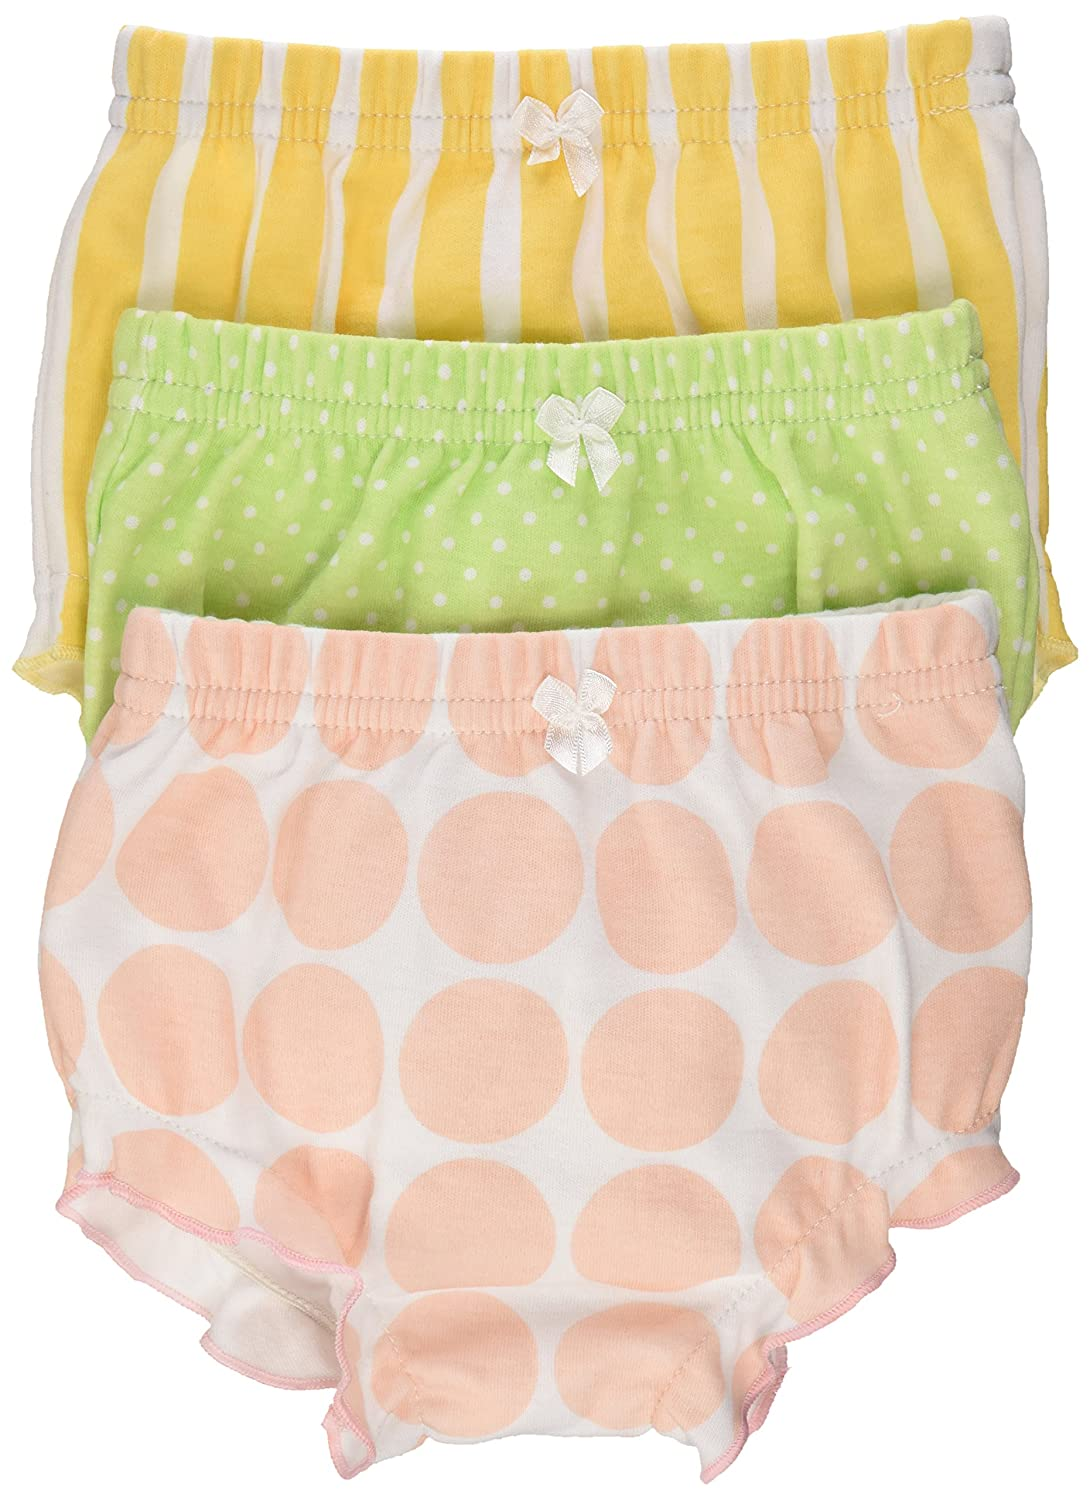 Baby Aspen Bunch O'Bloomers low-pricing Three Bloomers Blooming Bum for mart